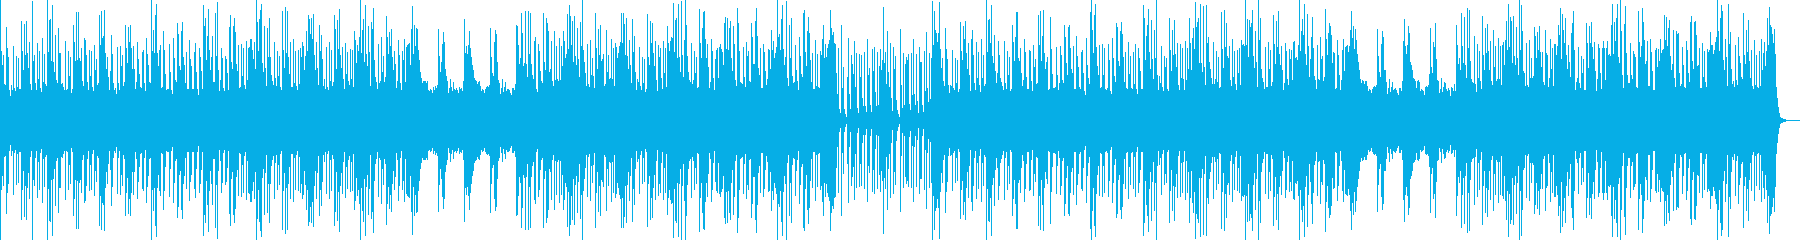 Japanese drum and Shinobue festival music's reproduced waveform